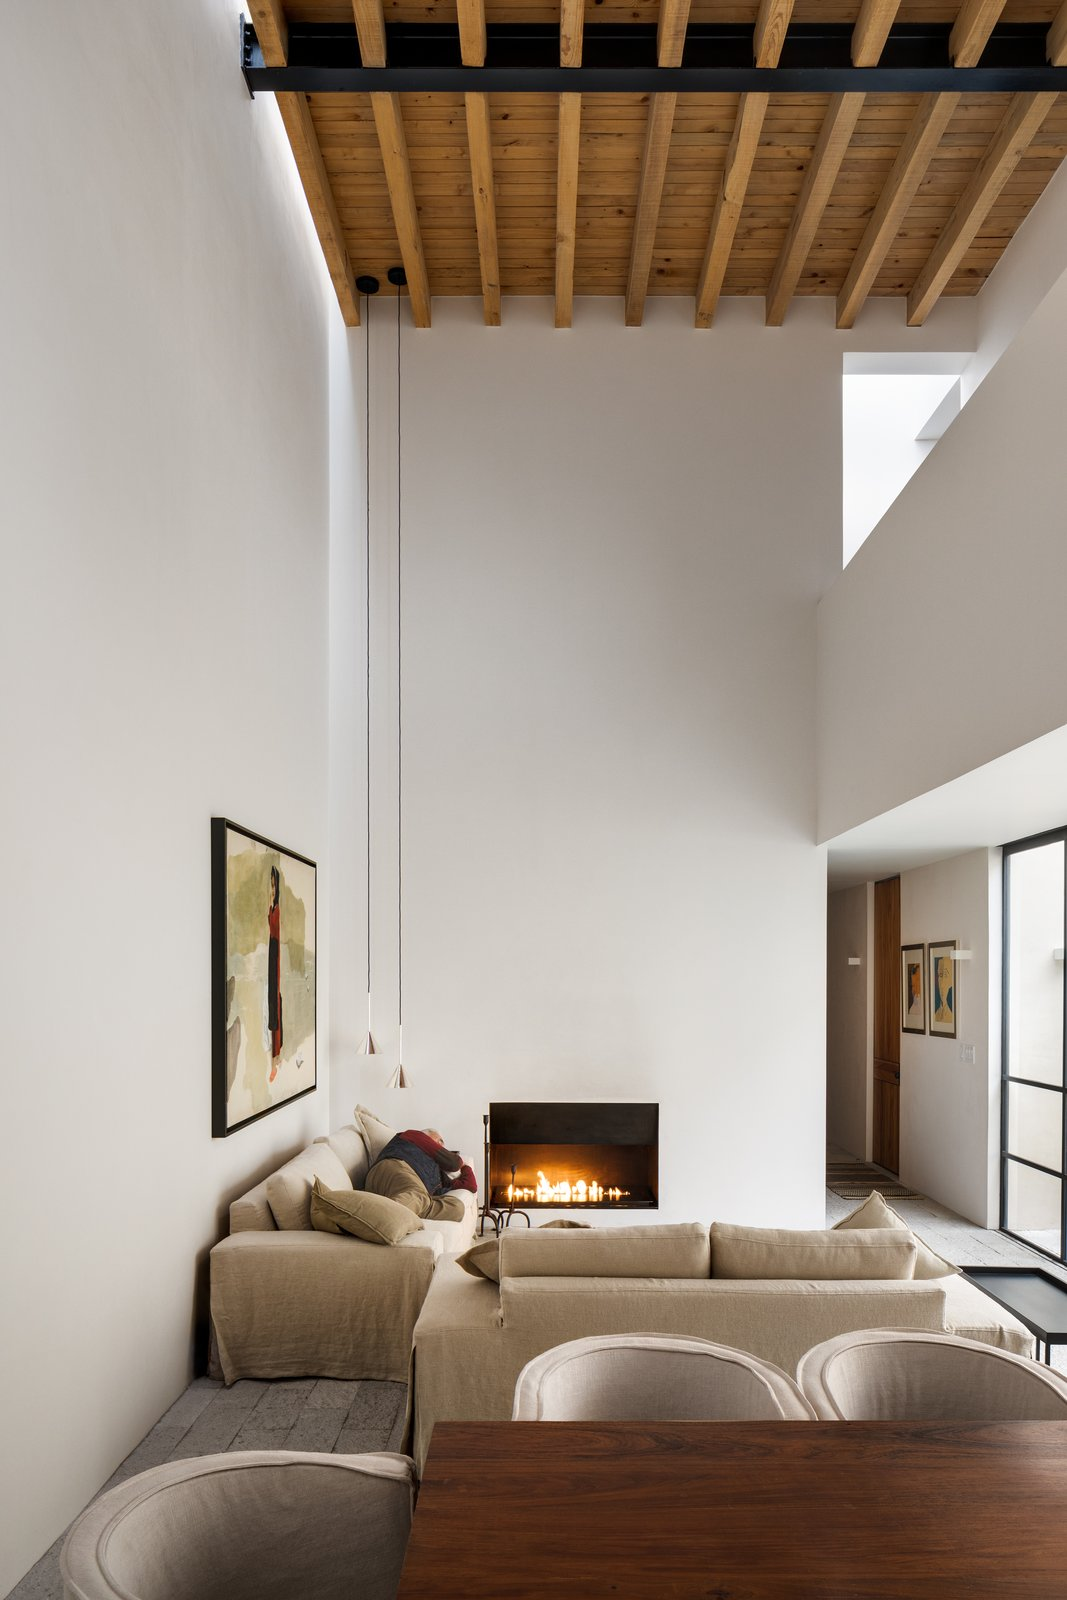 Living Room, Standard Layout Fireplace, Pendant Lighting, and Sofa In the main living space, two sofas are arranged around a fireplace, with long pendant lights hanging from the high ceiling.    Photo 5 of 9 in What it Really Means When a Home Has Good Bones from Muted Tones Mingle With Light and Shadows to Form a Quiet Mexican Oasis